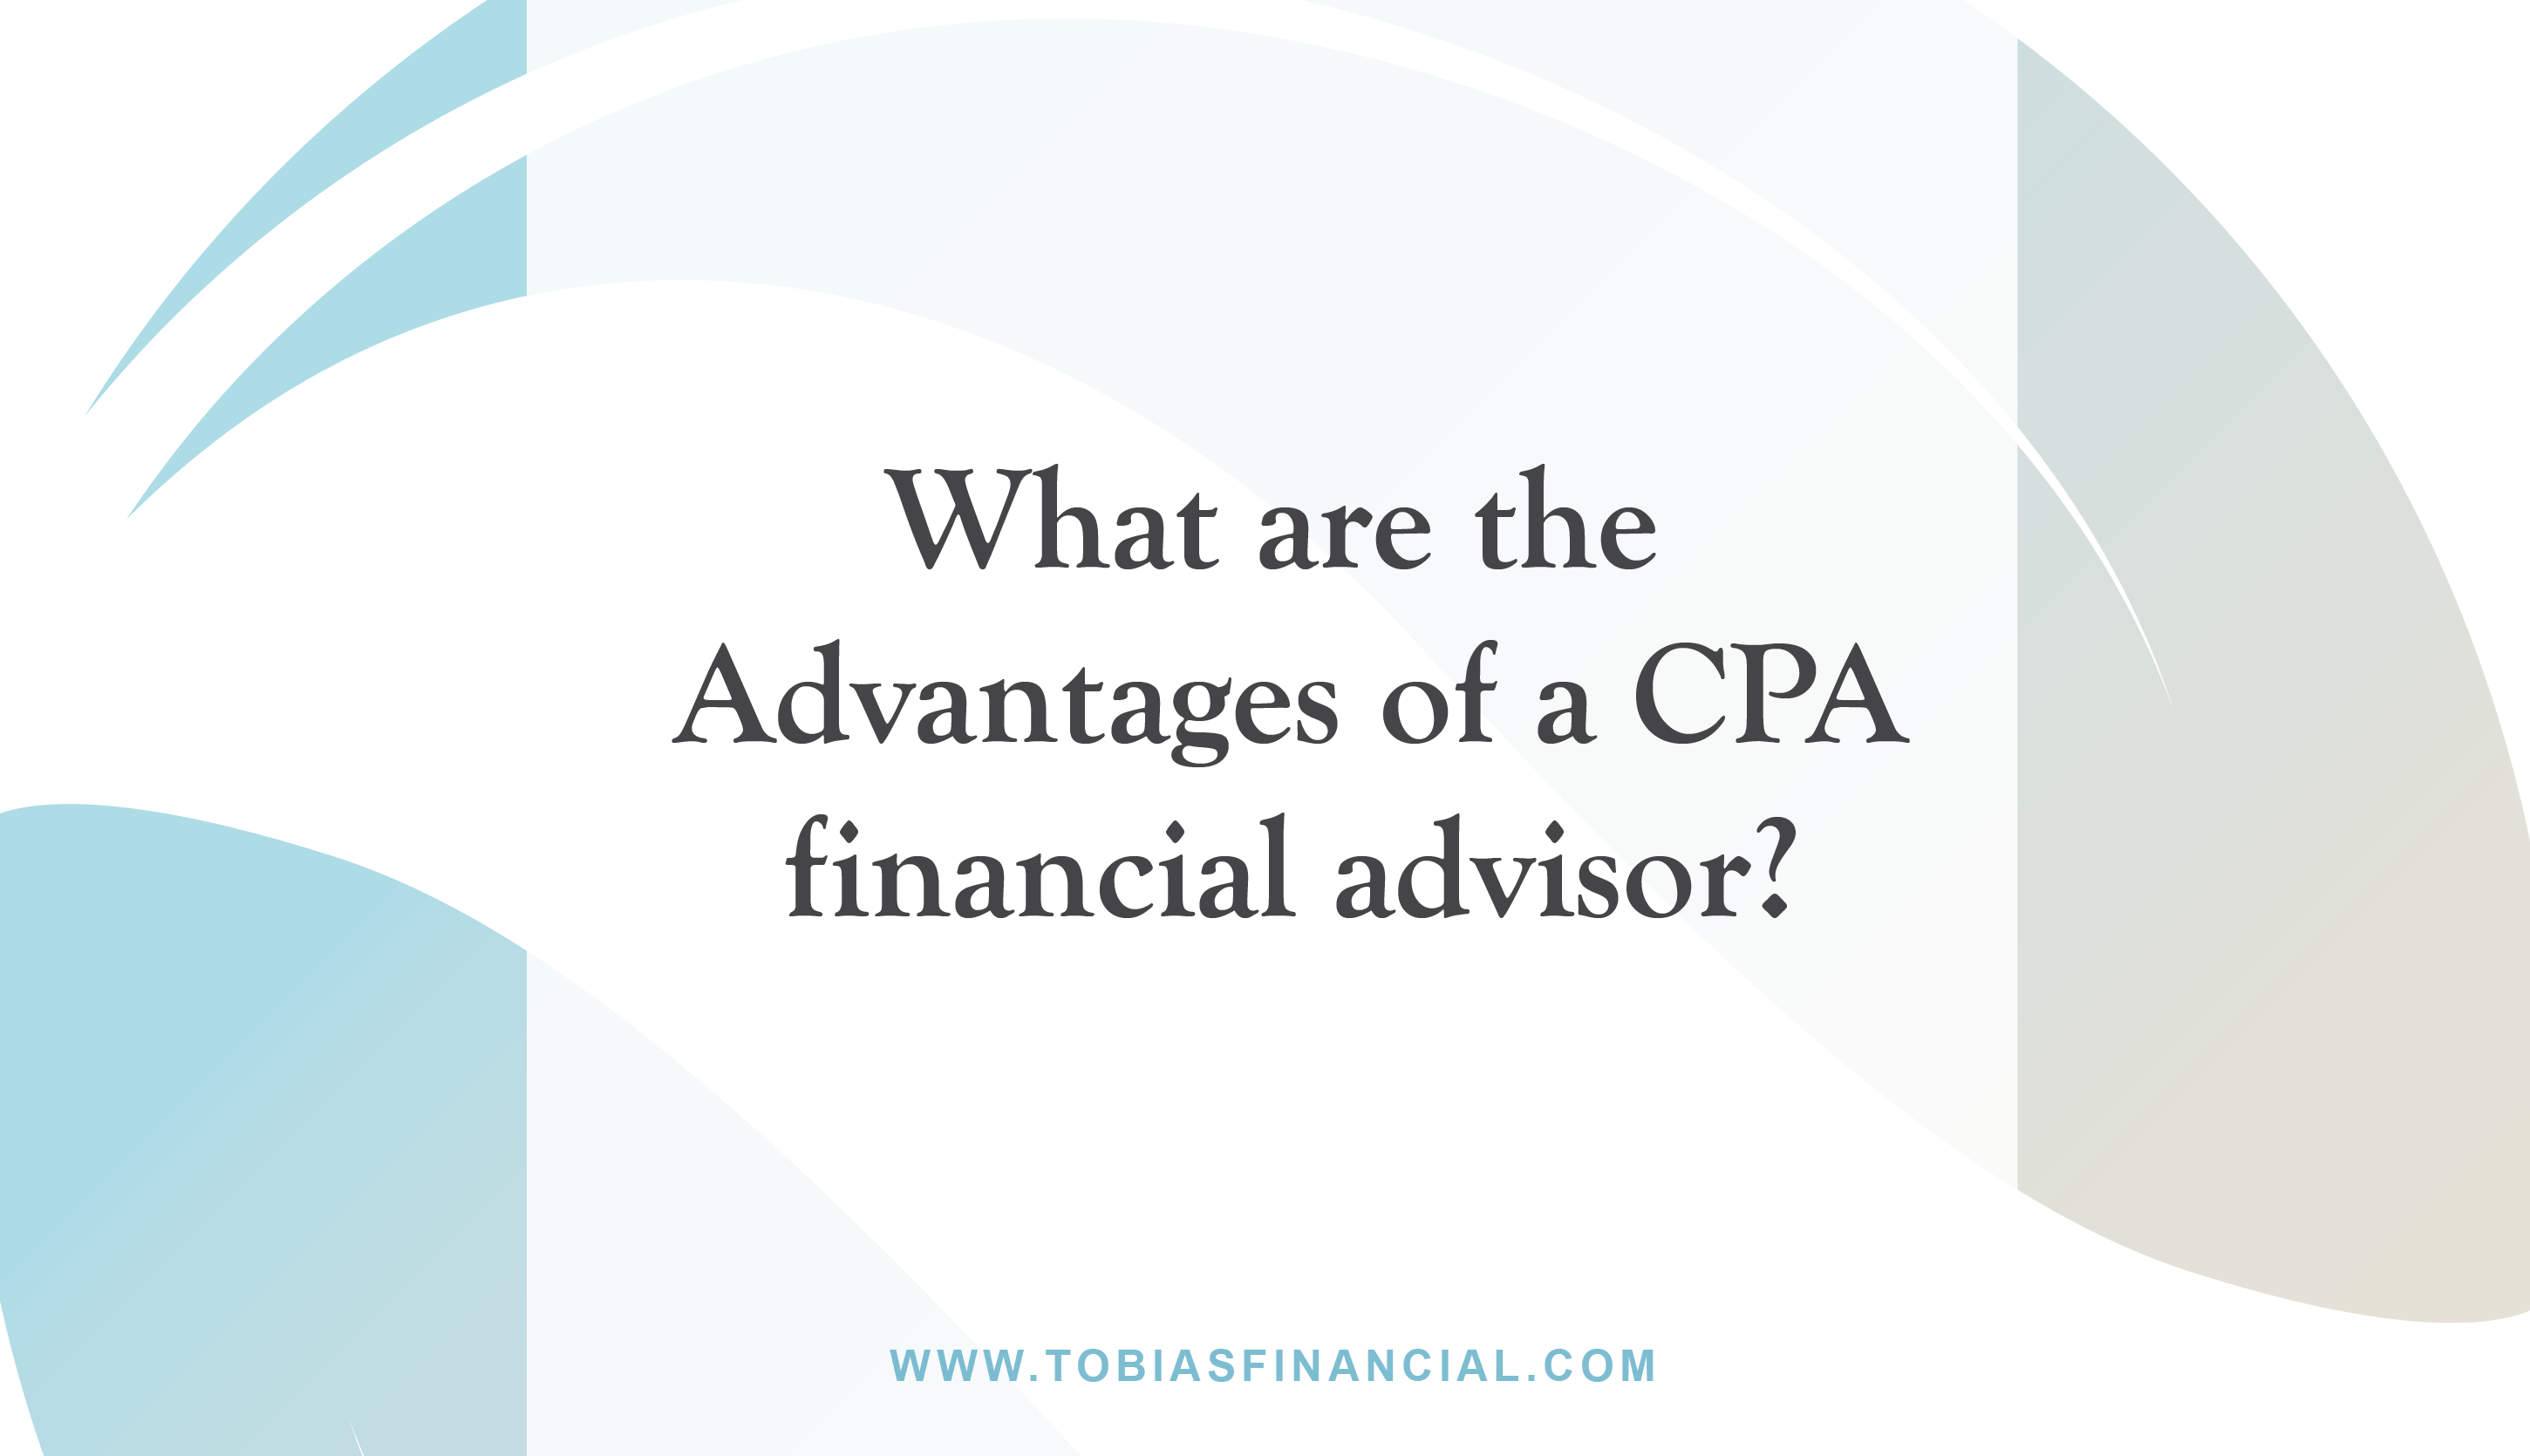 What are the advantages of a CPA financial advisor?